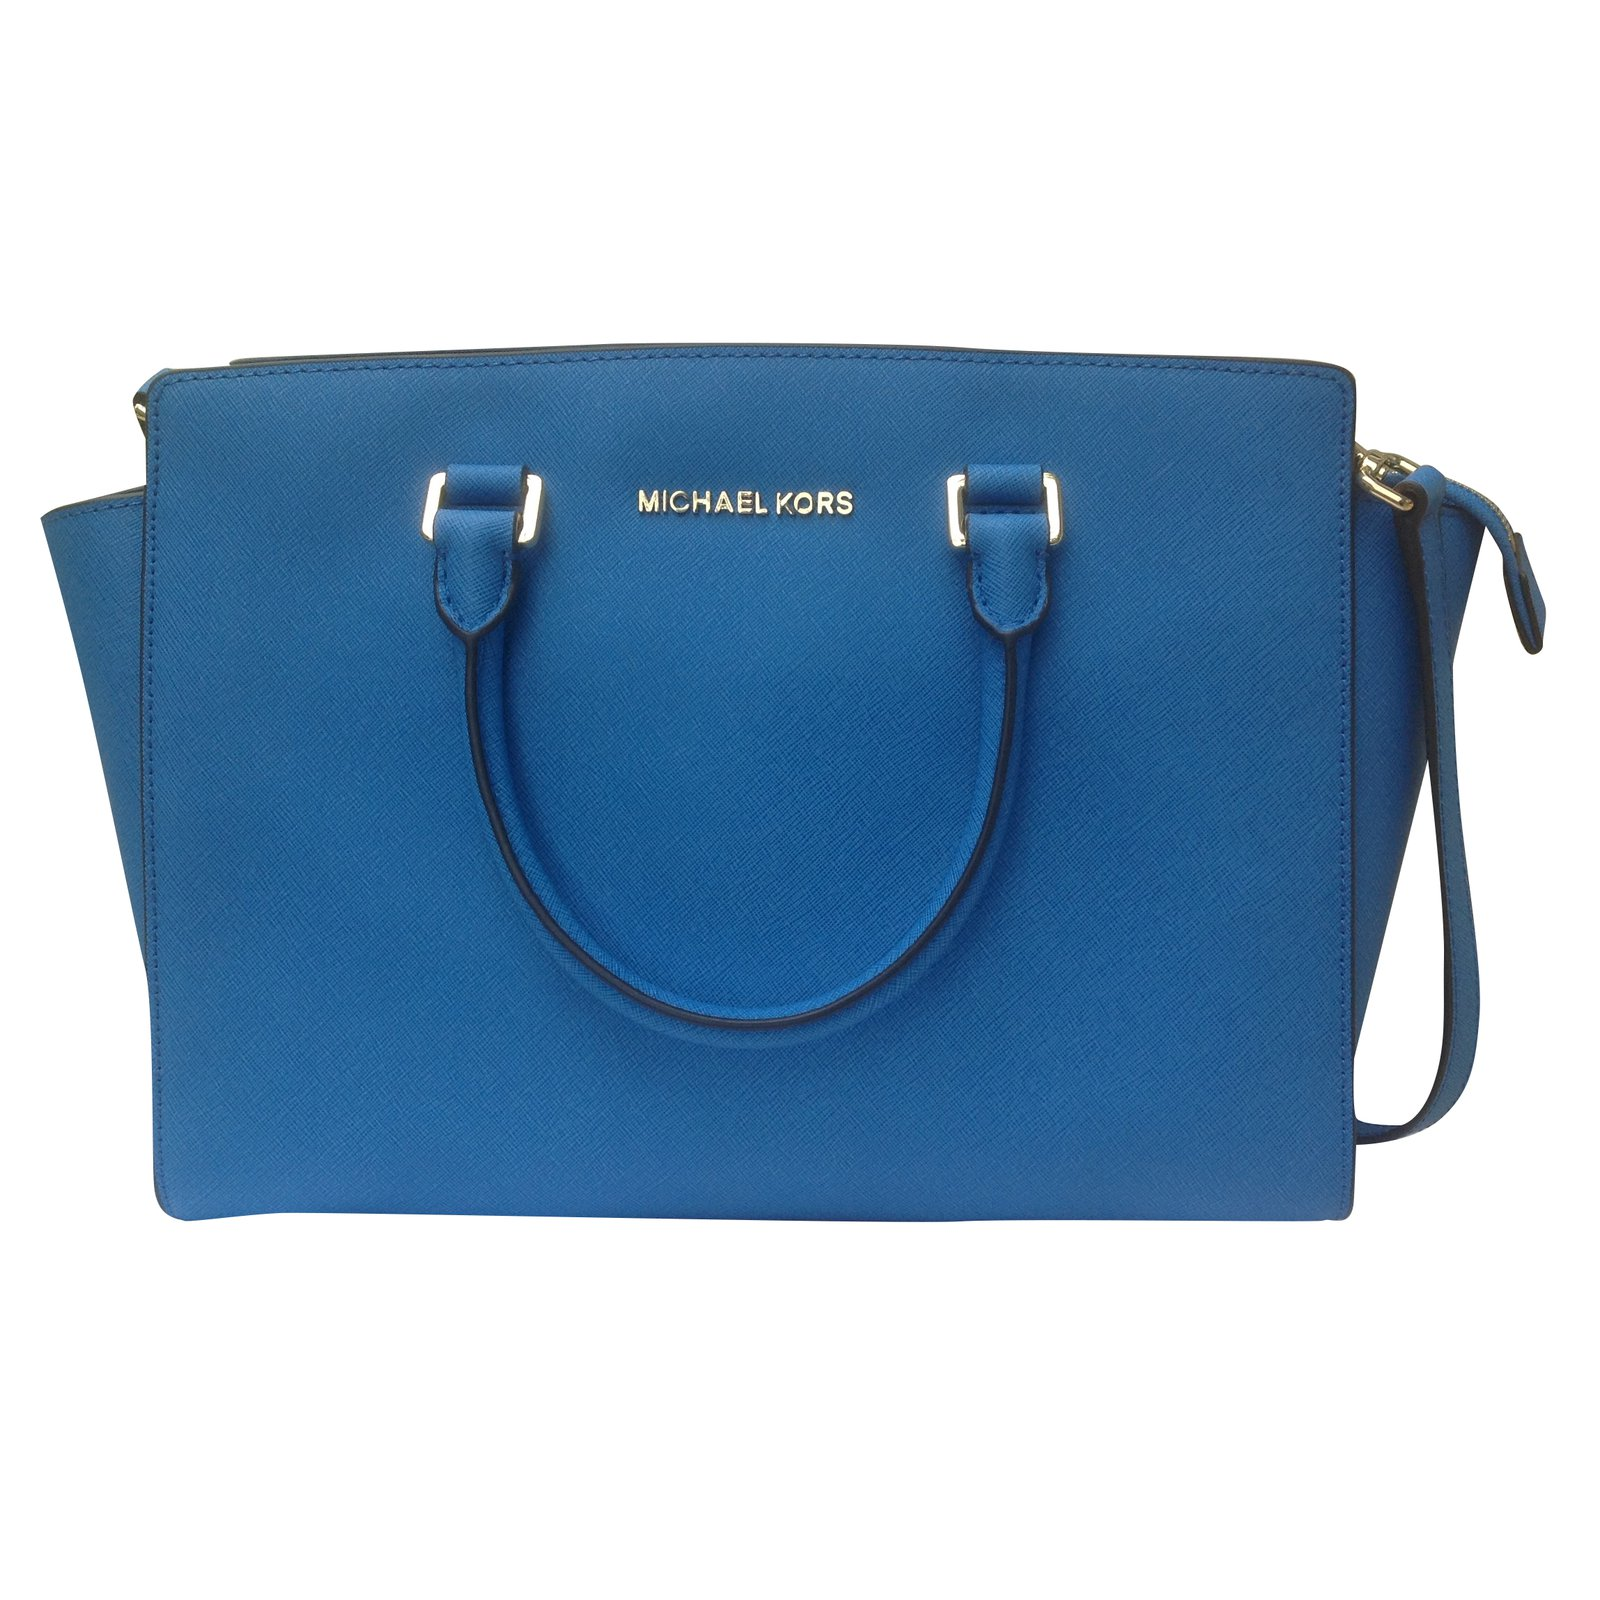 6de37be4acfd Michael Kors Selma Large Leather Satchael Handbags Leather Blue ref.43168